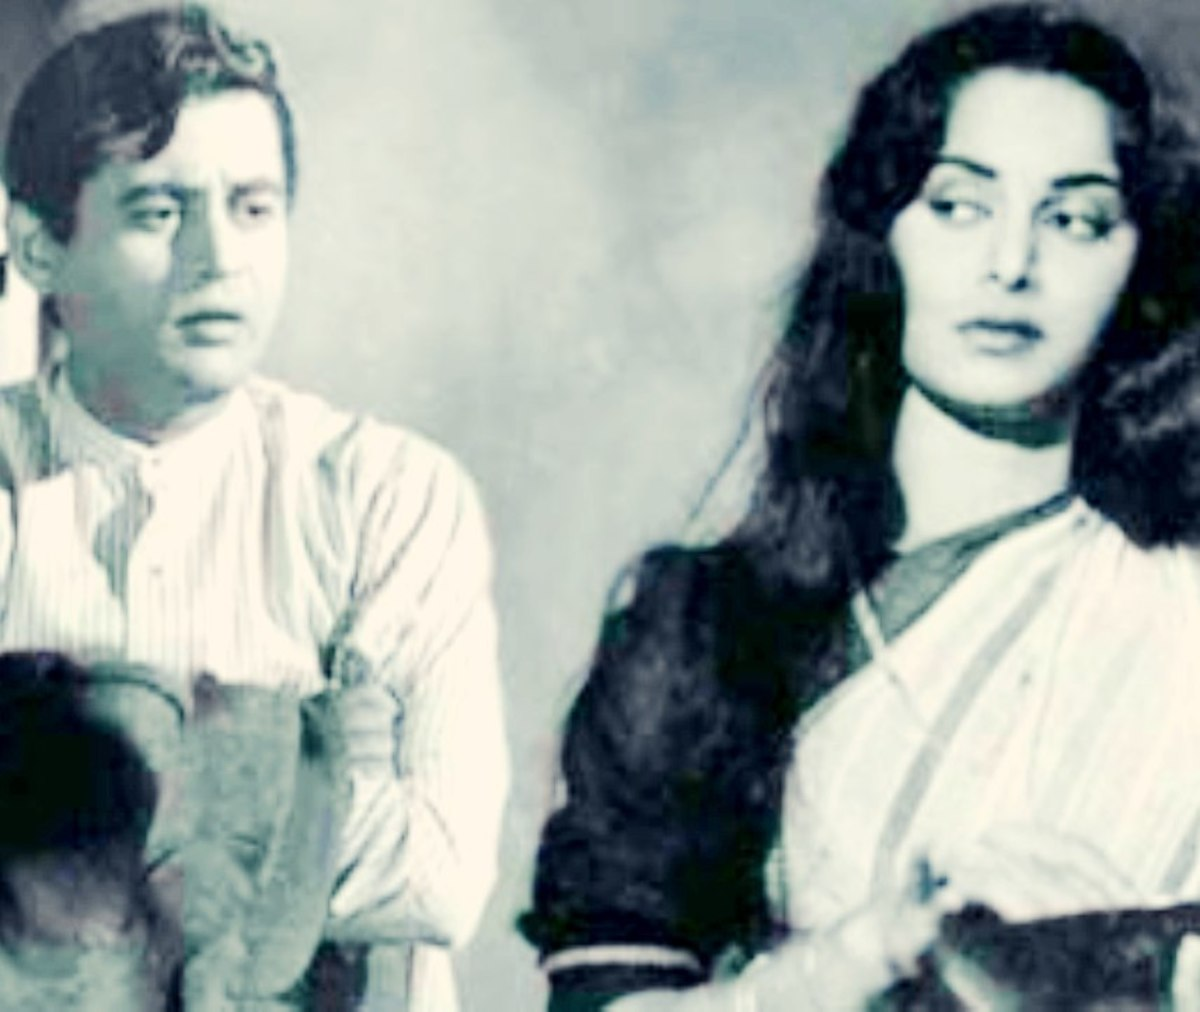 Guru Dutt and Waheeda Rahman were part of the some of the greatest movies ever made in Bollywood